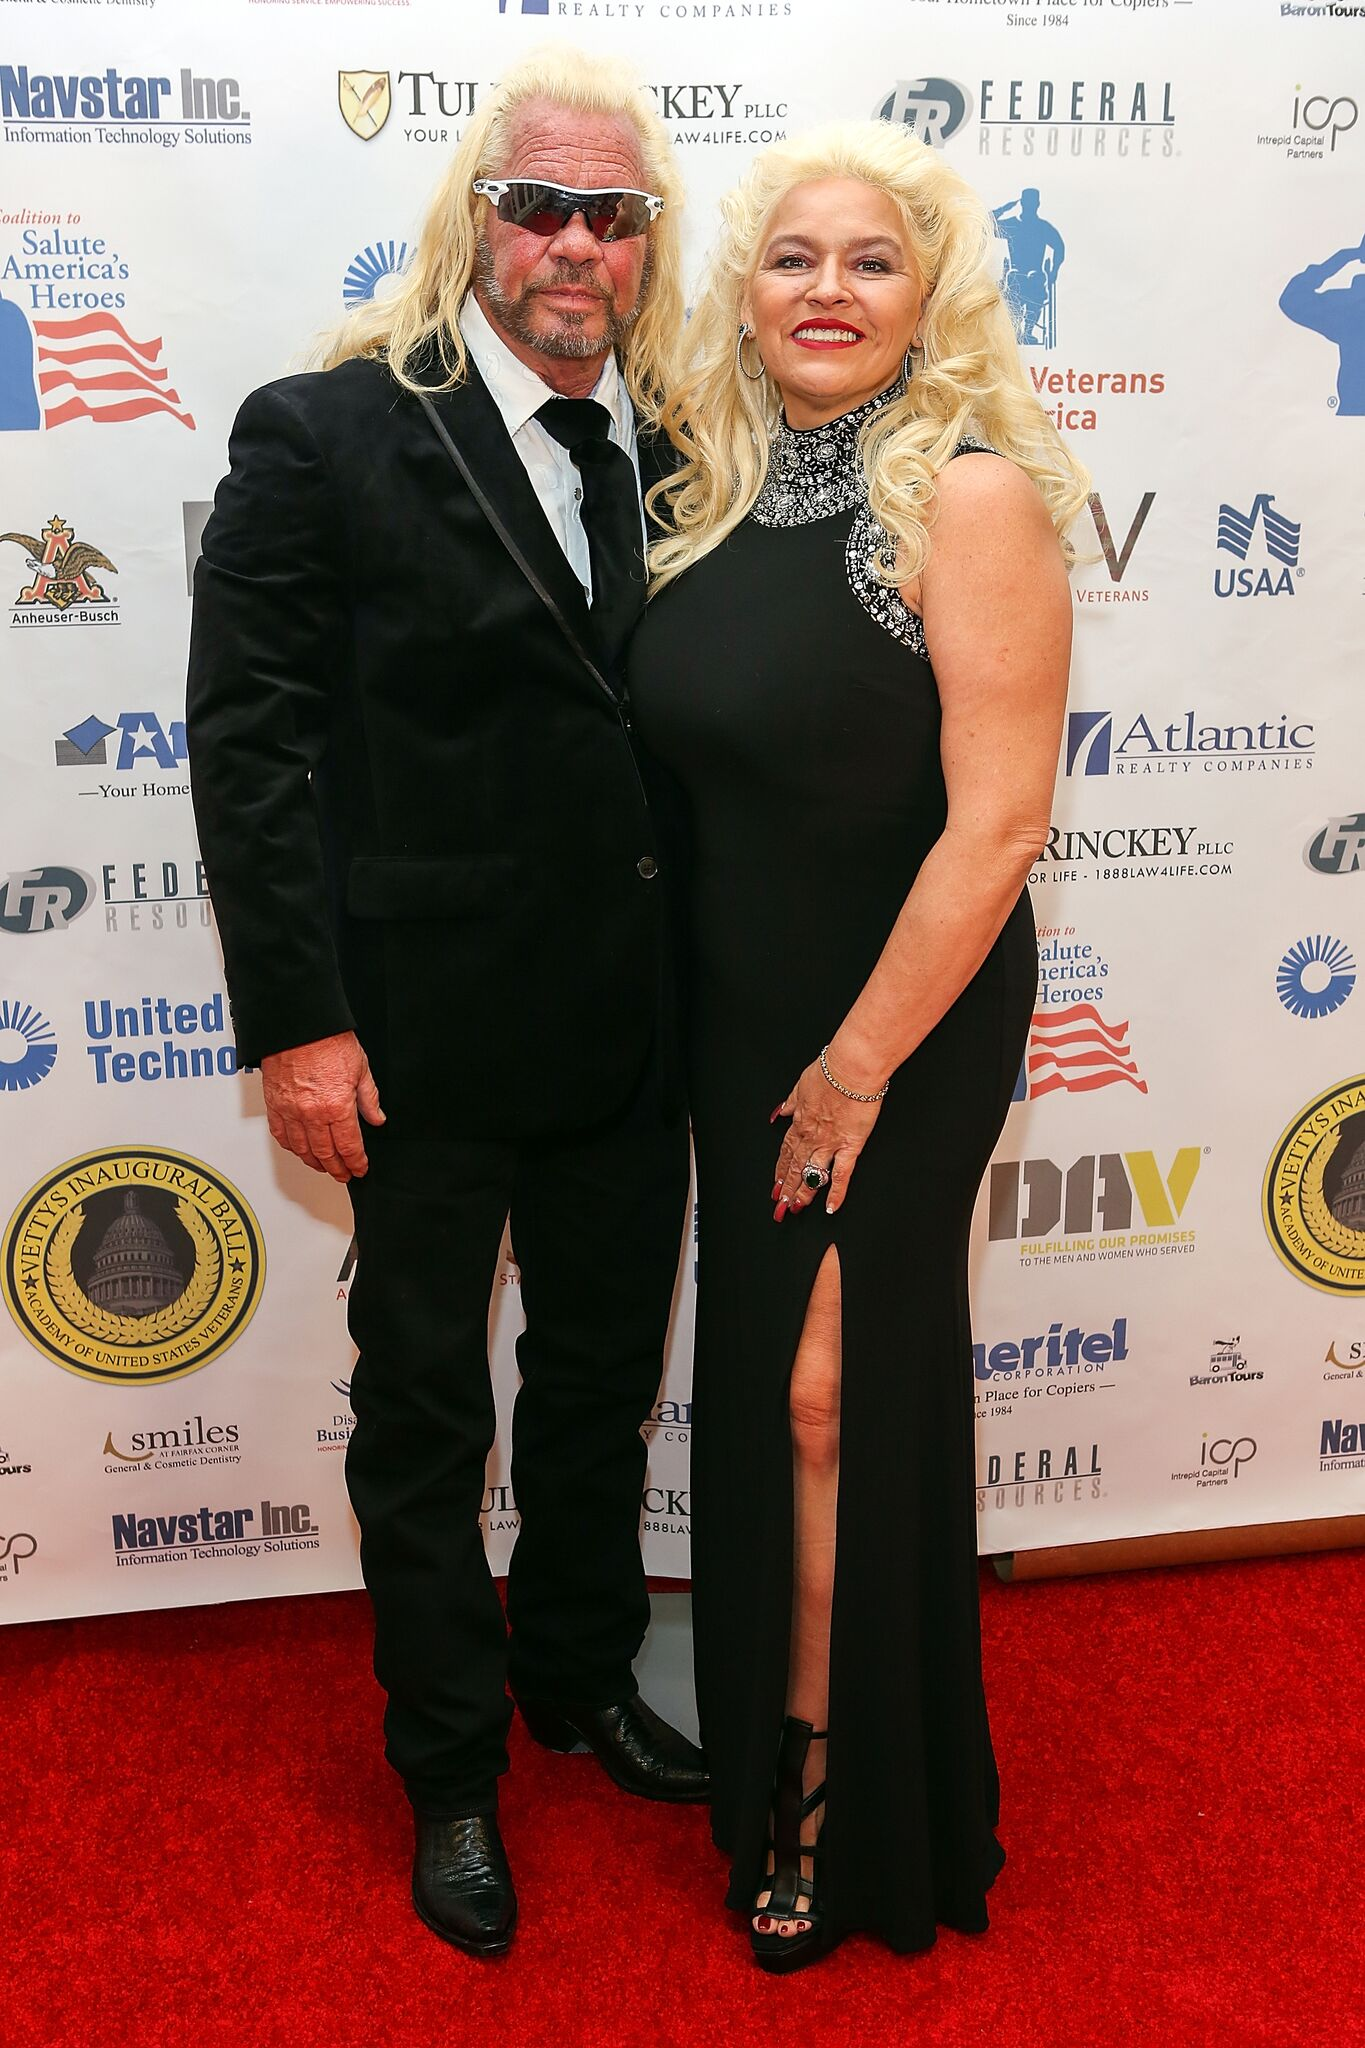 "Duane 'Dog the Bounty Hunter"" Chapman (L) and Beth Chapman attend the Vettys Presidential Inaugural Ball  